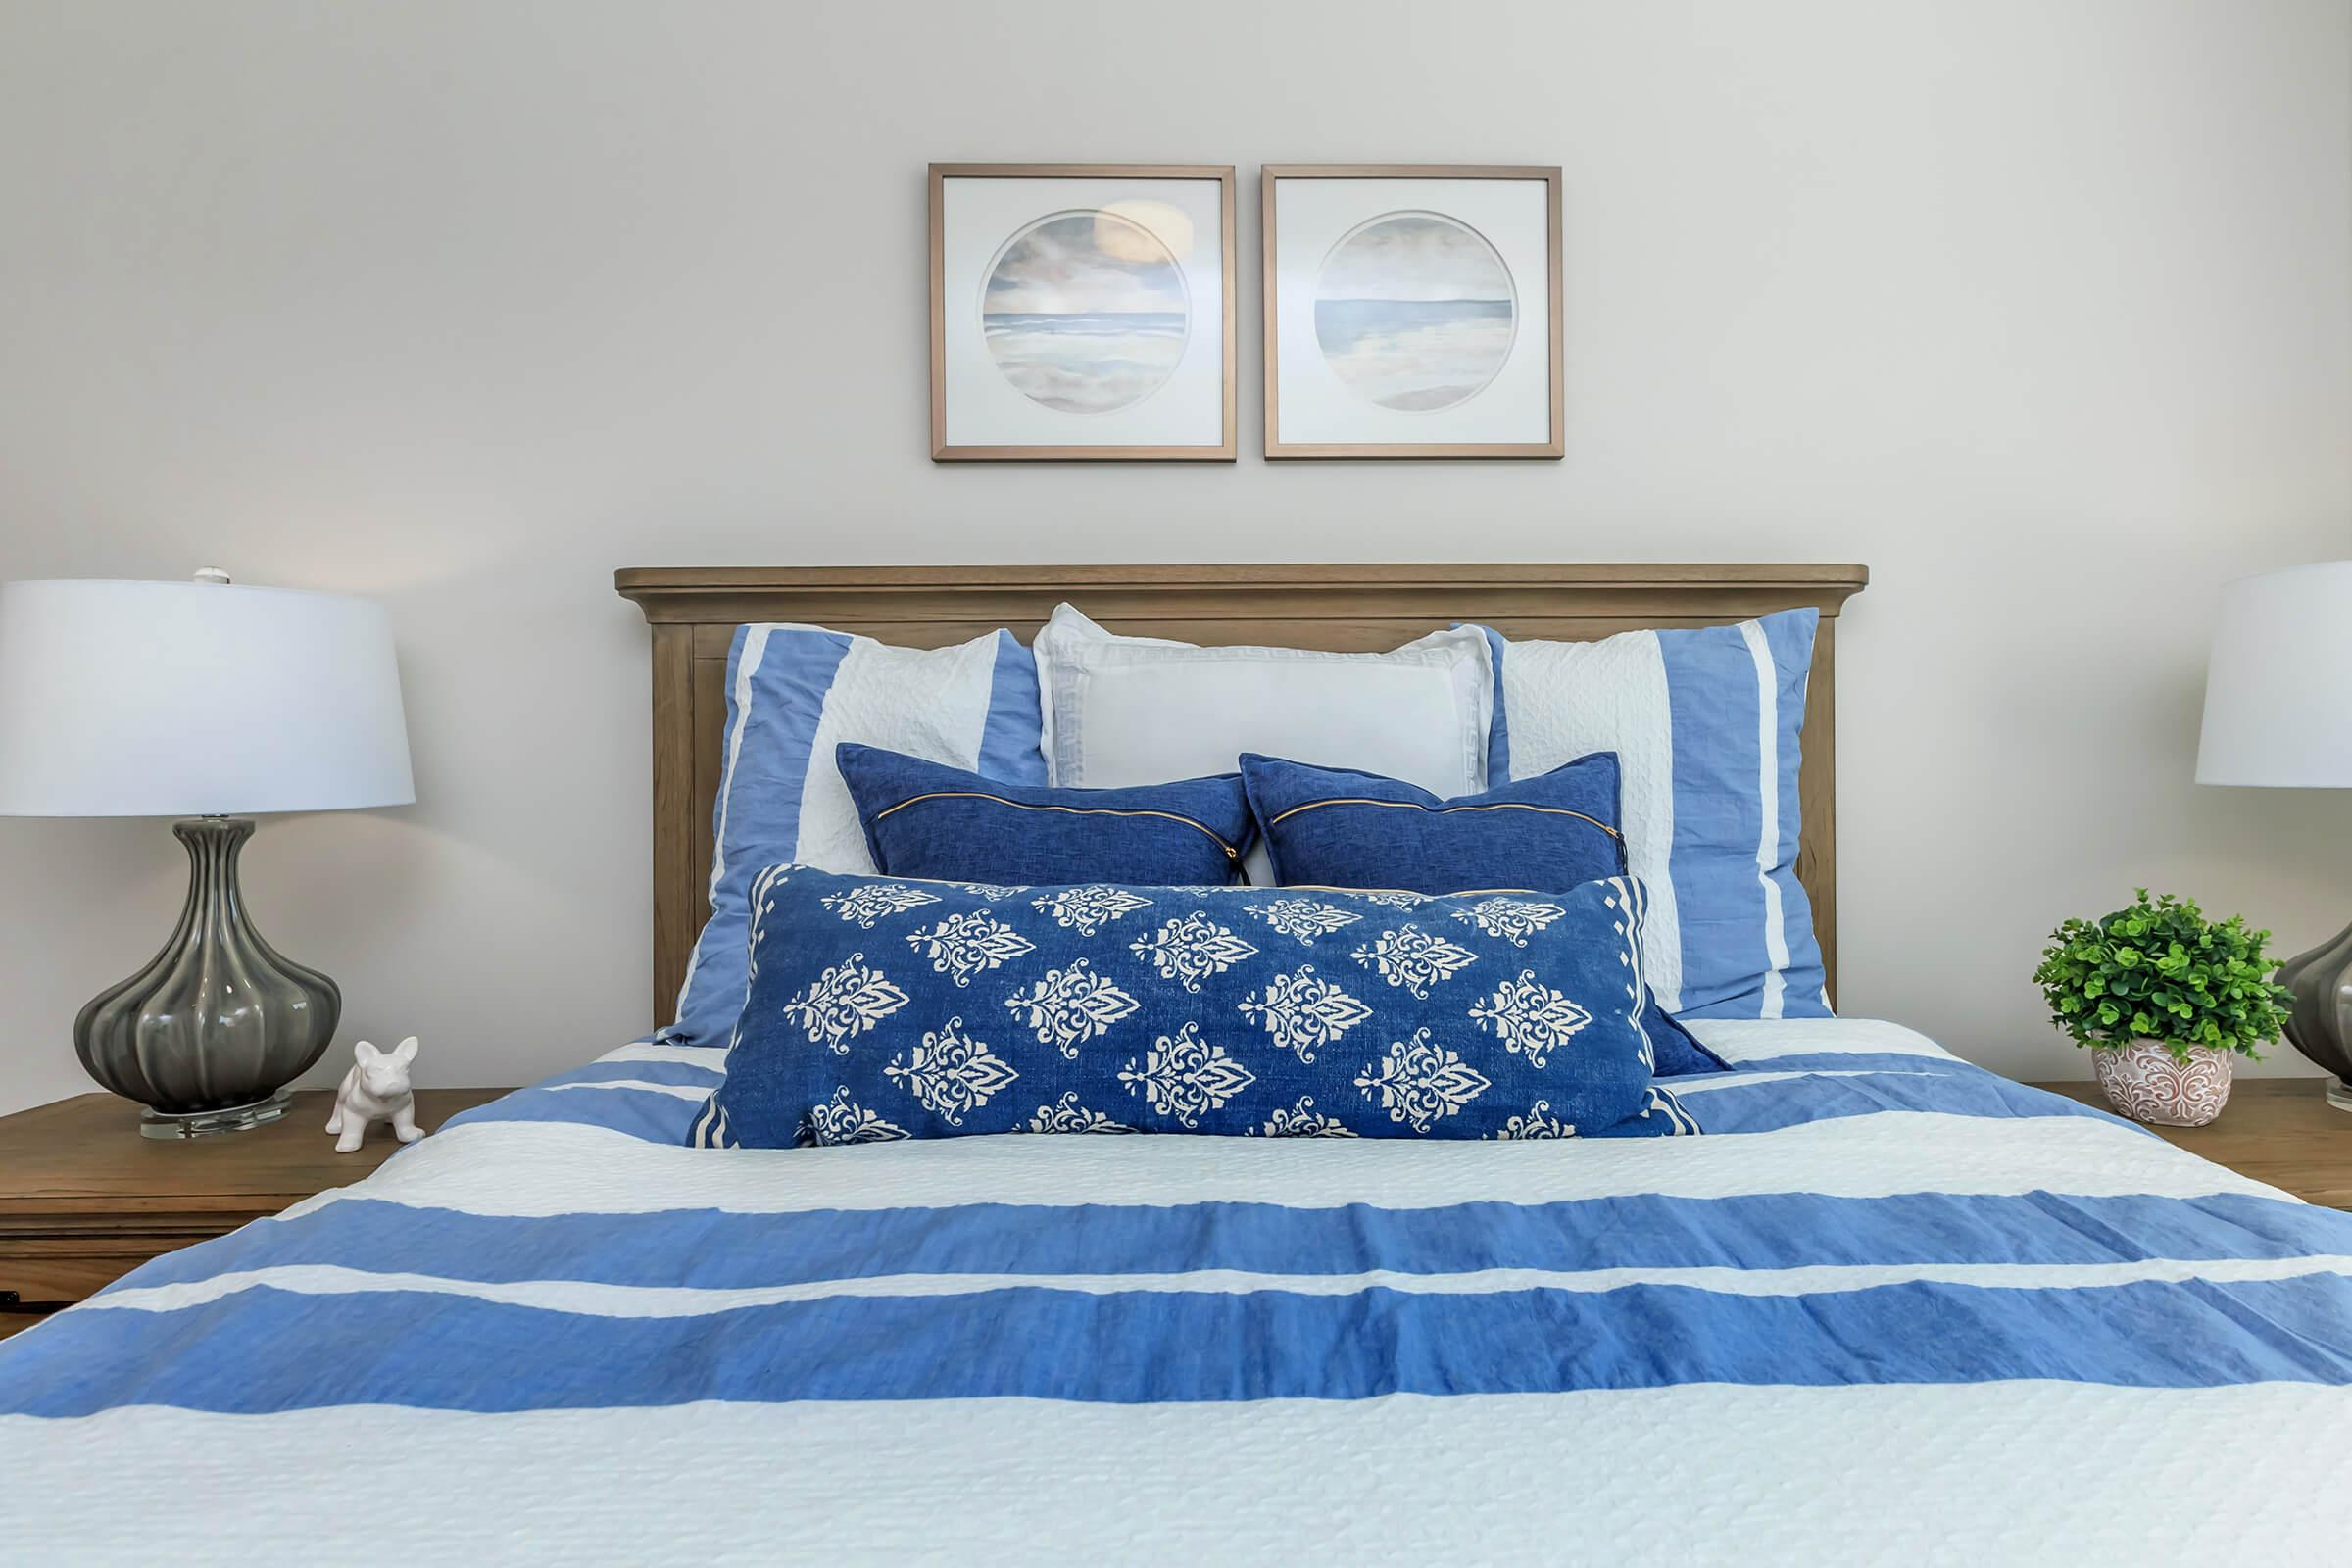 a bedroom with a bed and a blue blanket